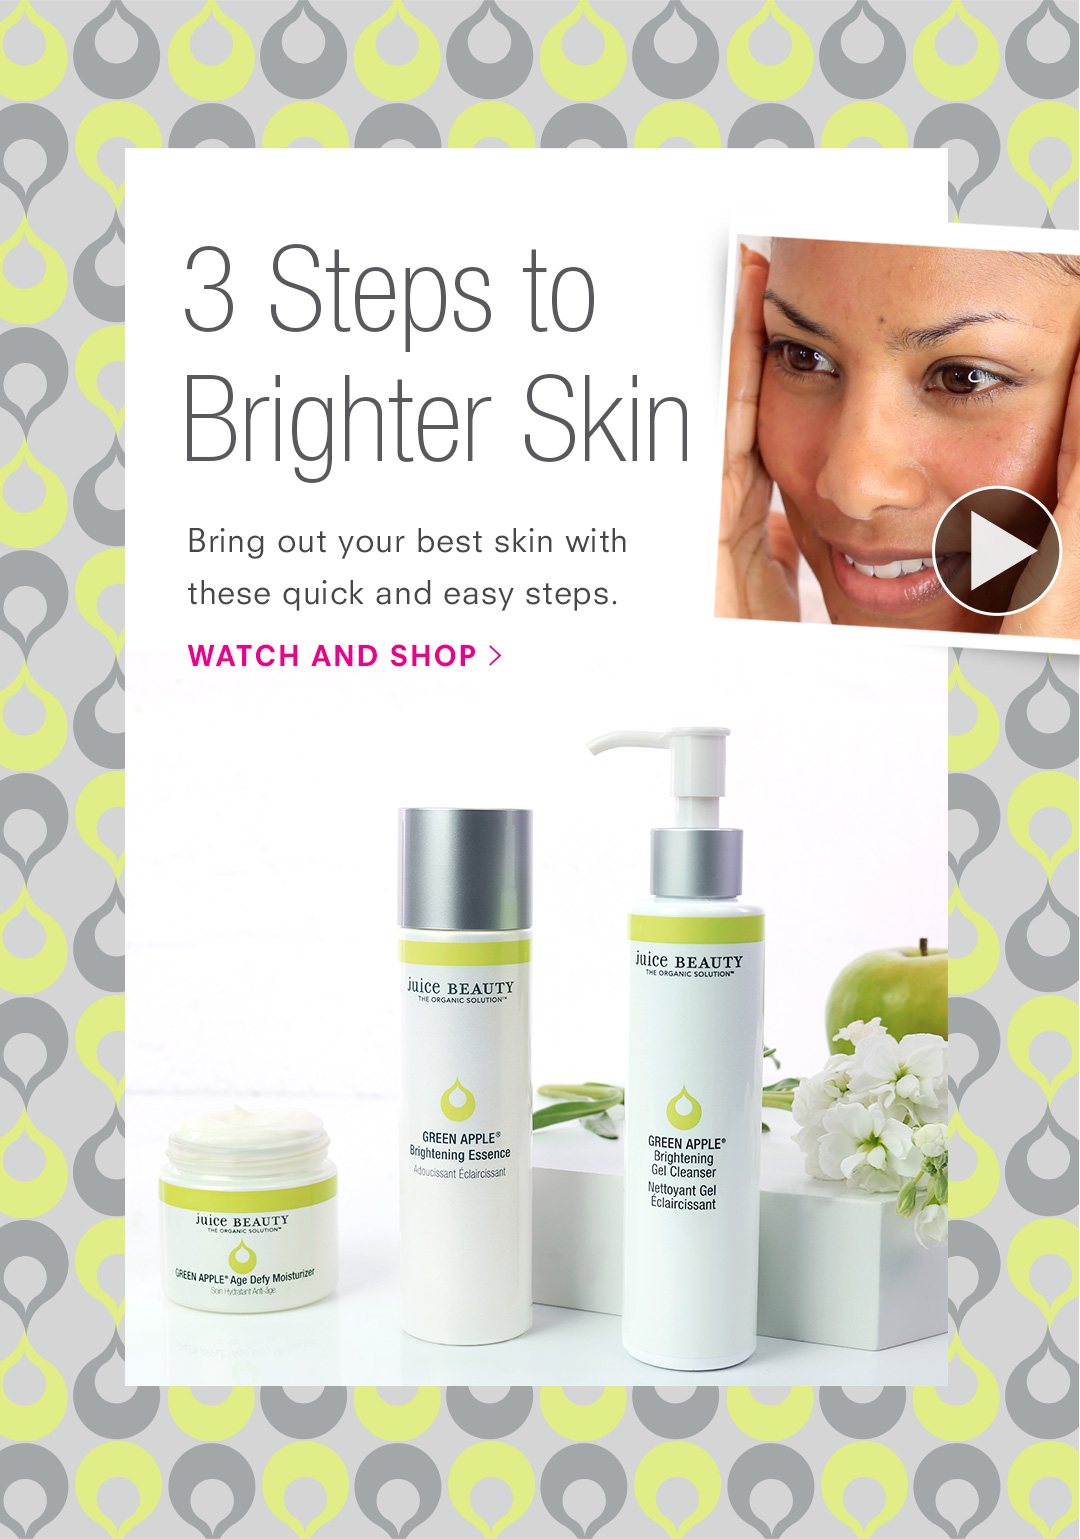 3 Steps to Brighter Skin